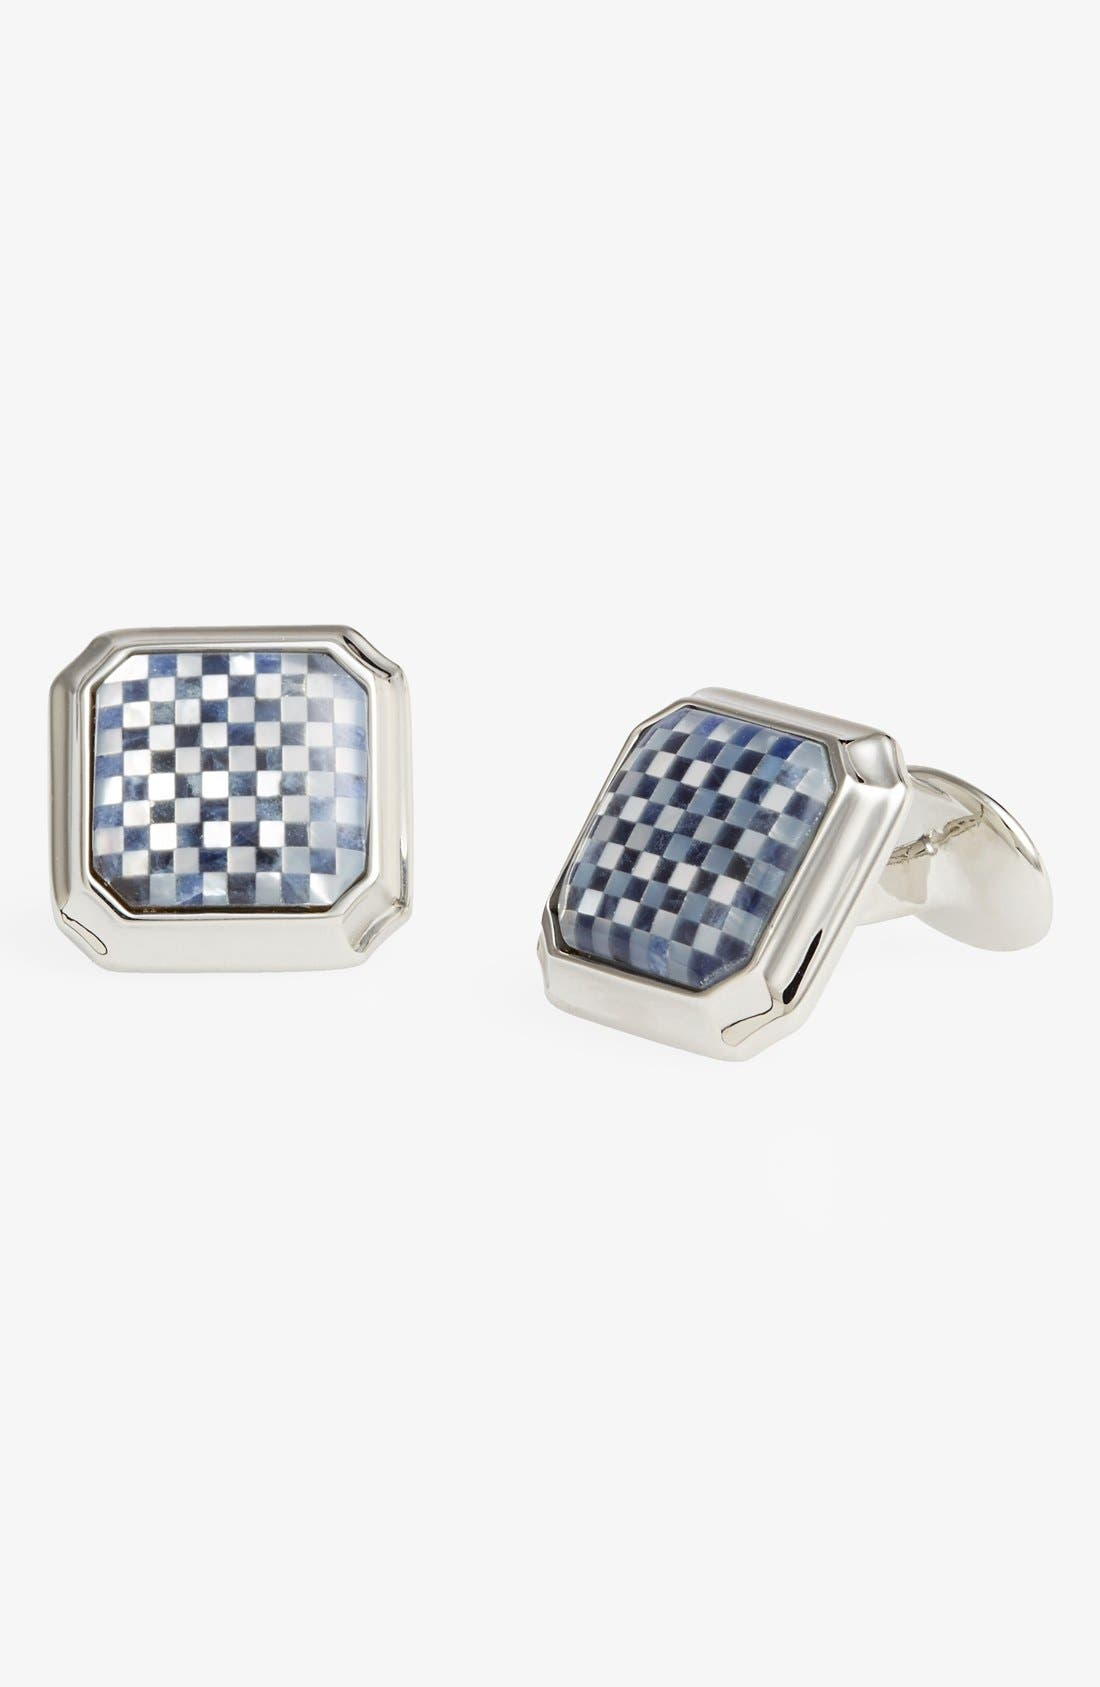 Mother of Pearl & Sodalite Cuff Links,                             Main thumbnail 1, color,                             040